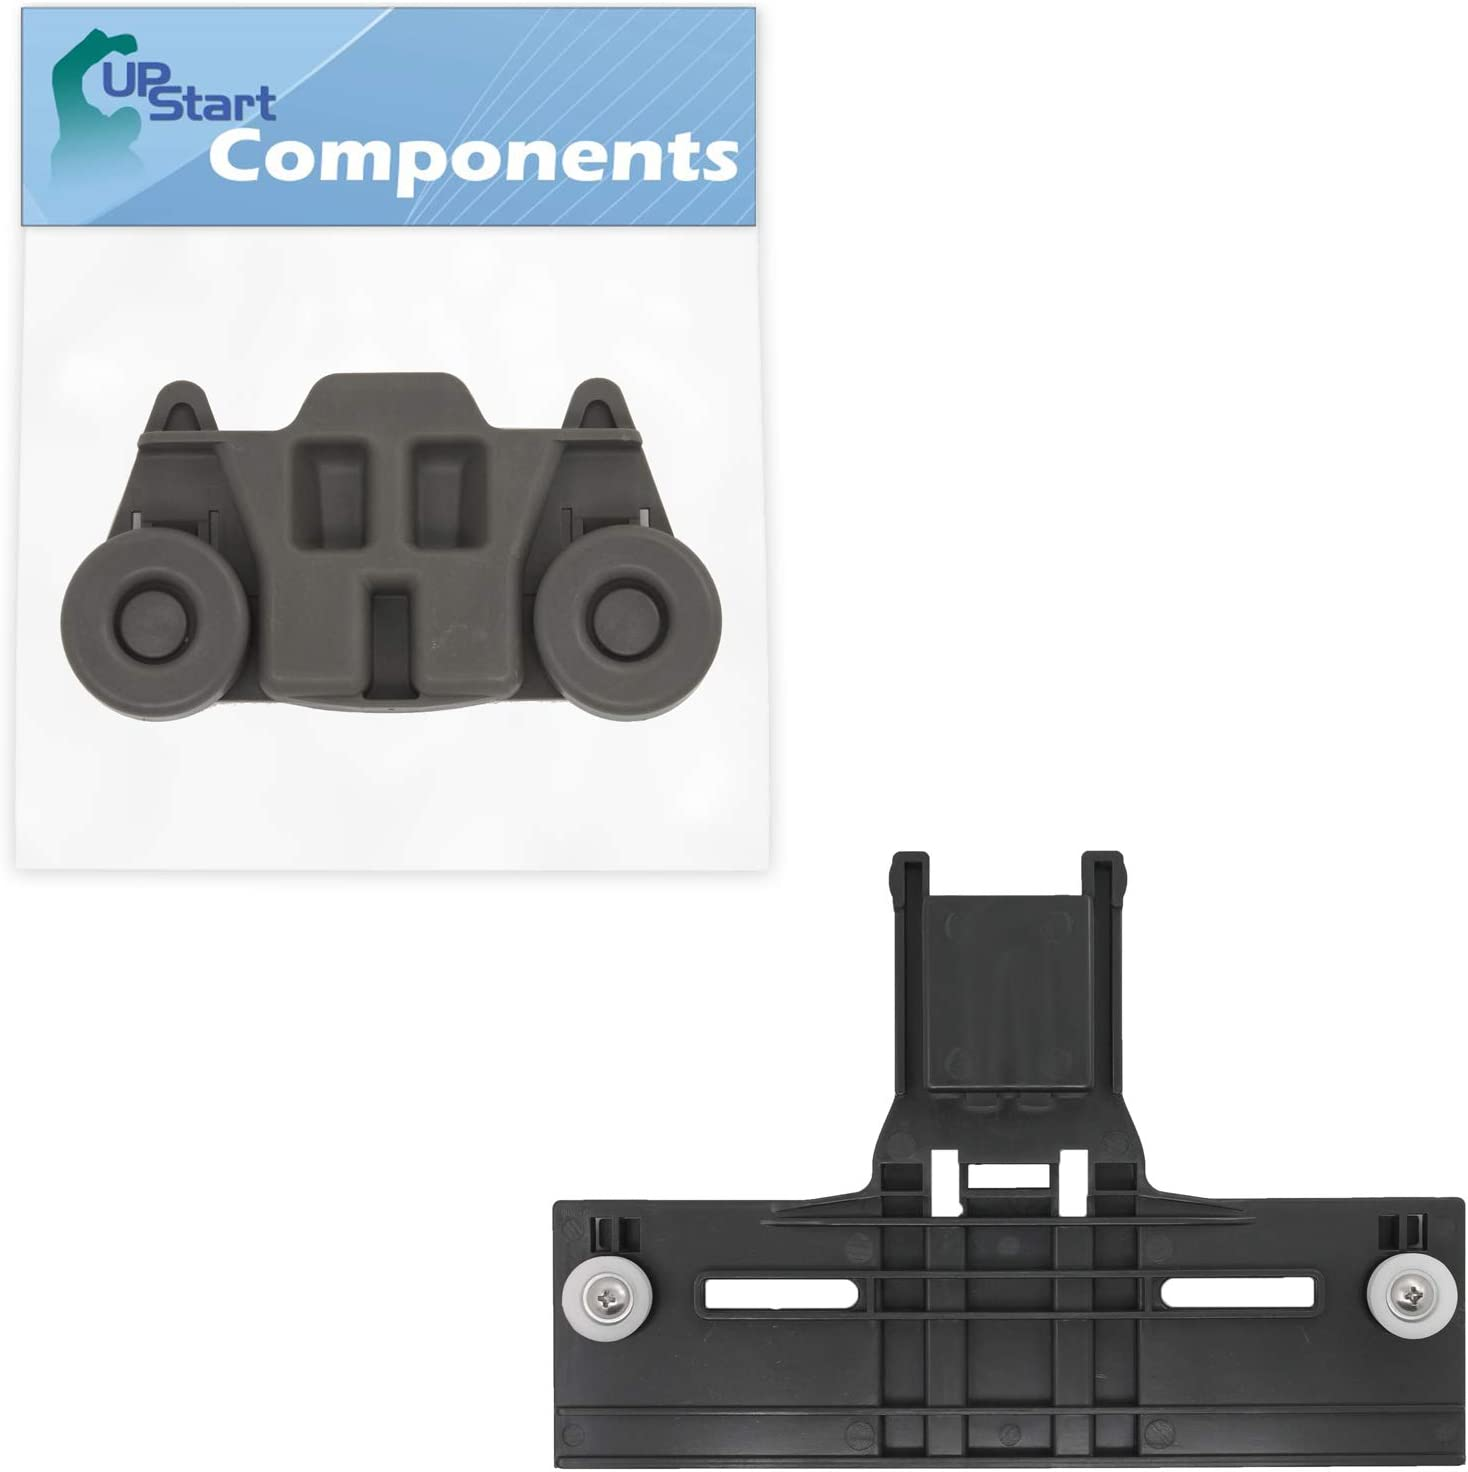 W10350376 Top Rack Adjuster & W10195416 Lower Dishwasher Wheel Replacement for KitchenAid KUDS30FXSS9 Dishwasher - Compatible with W10350376 Rack Upper Top Adjuster & W10195416 Dishrack Wheel Kit